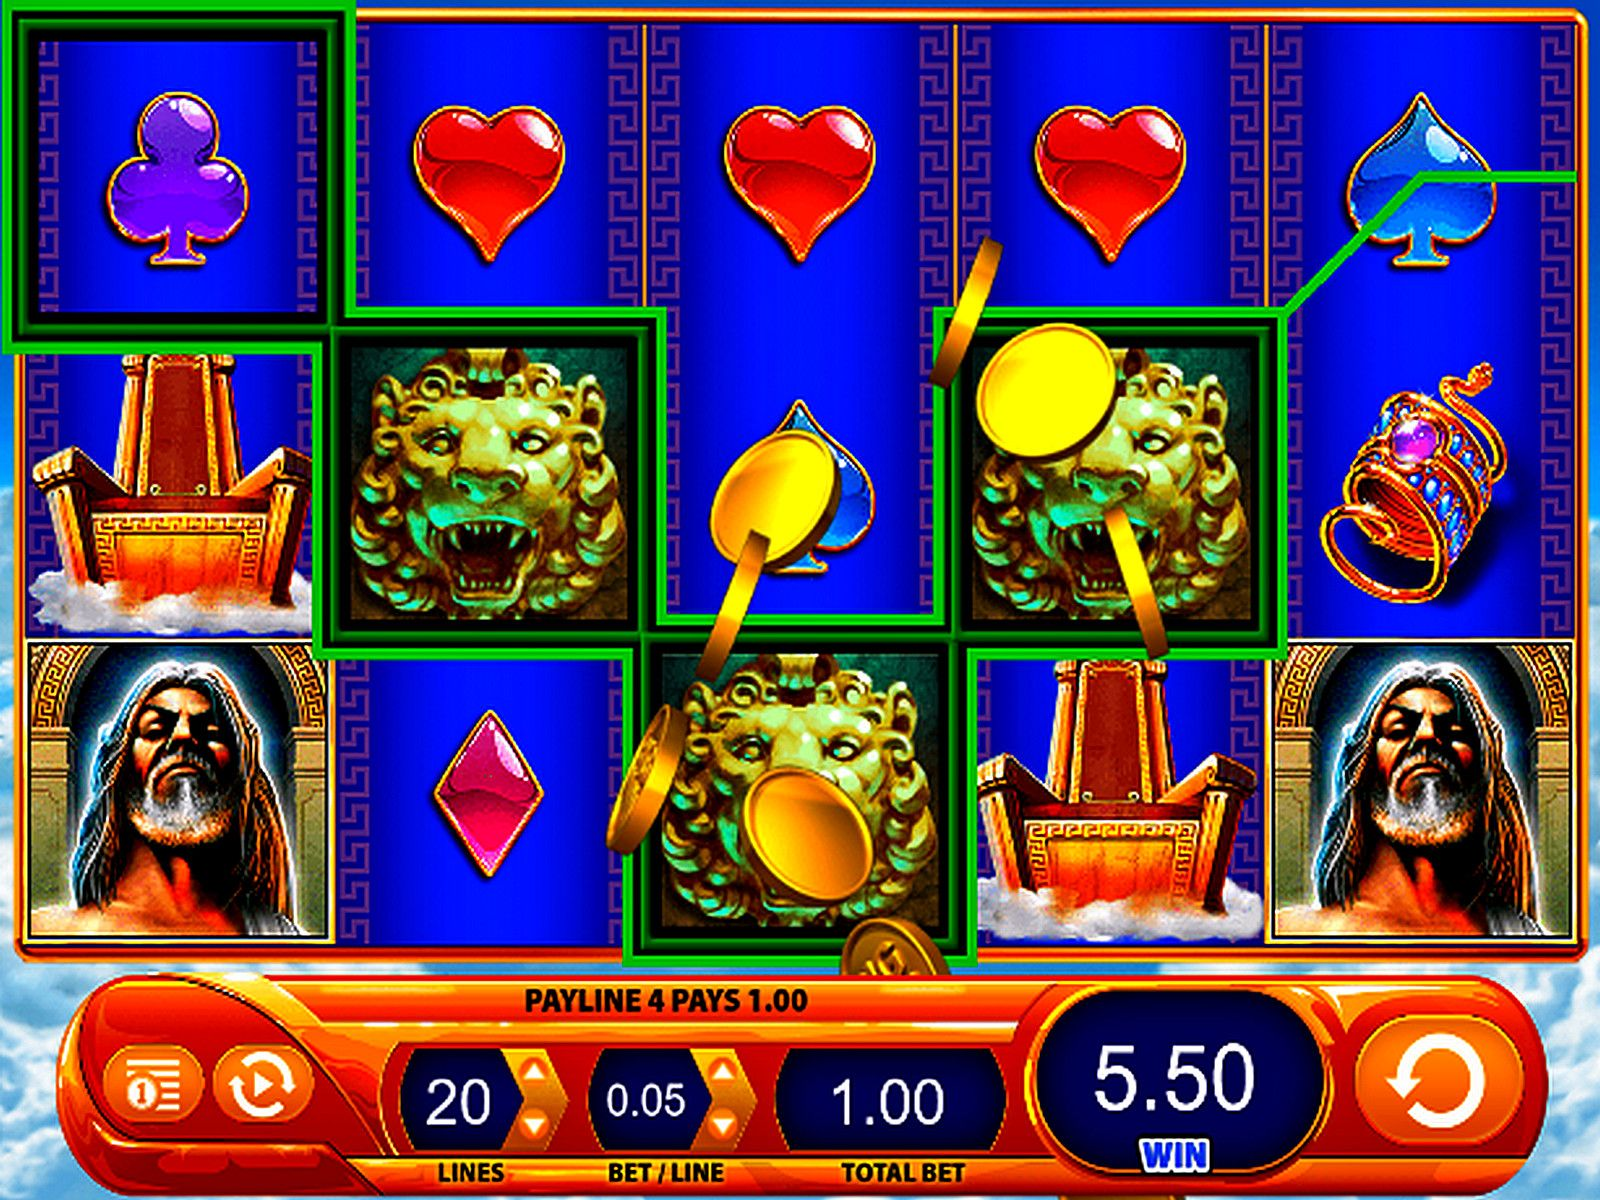 Play american roulette for free online